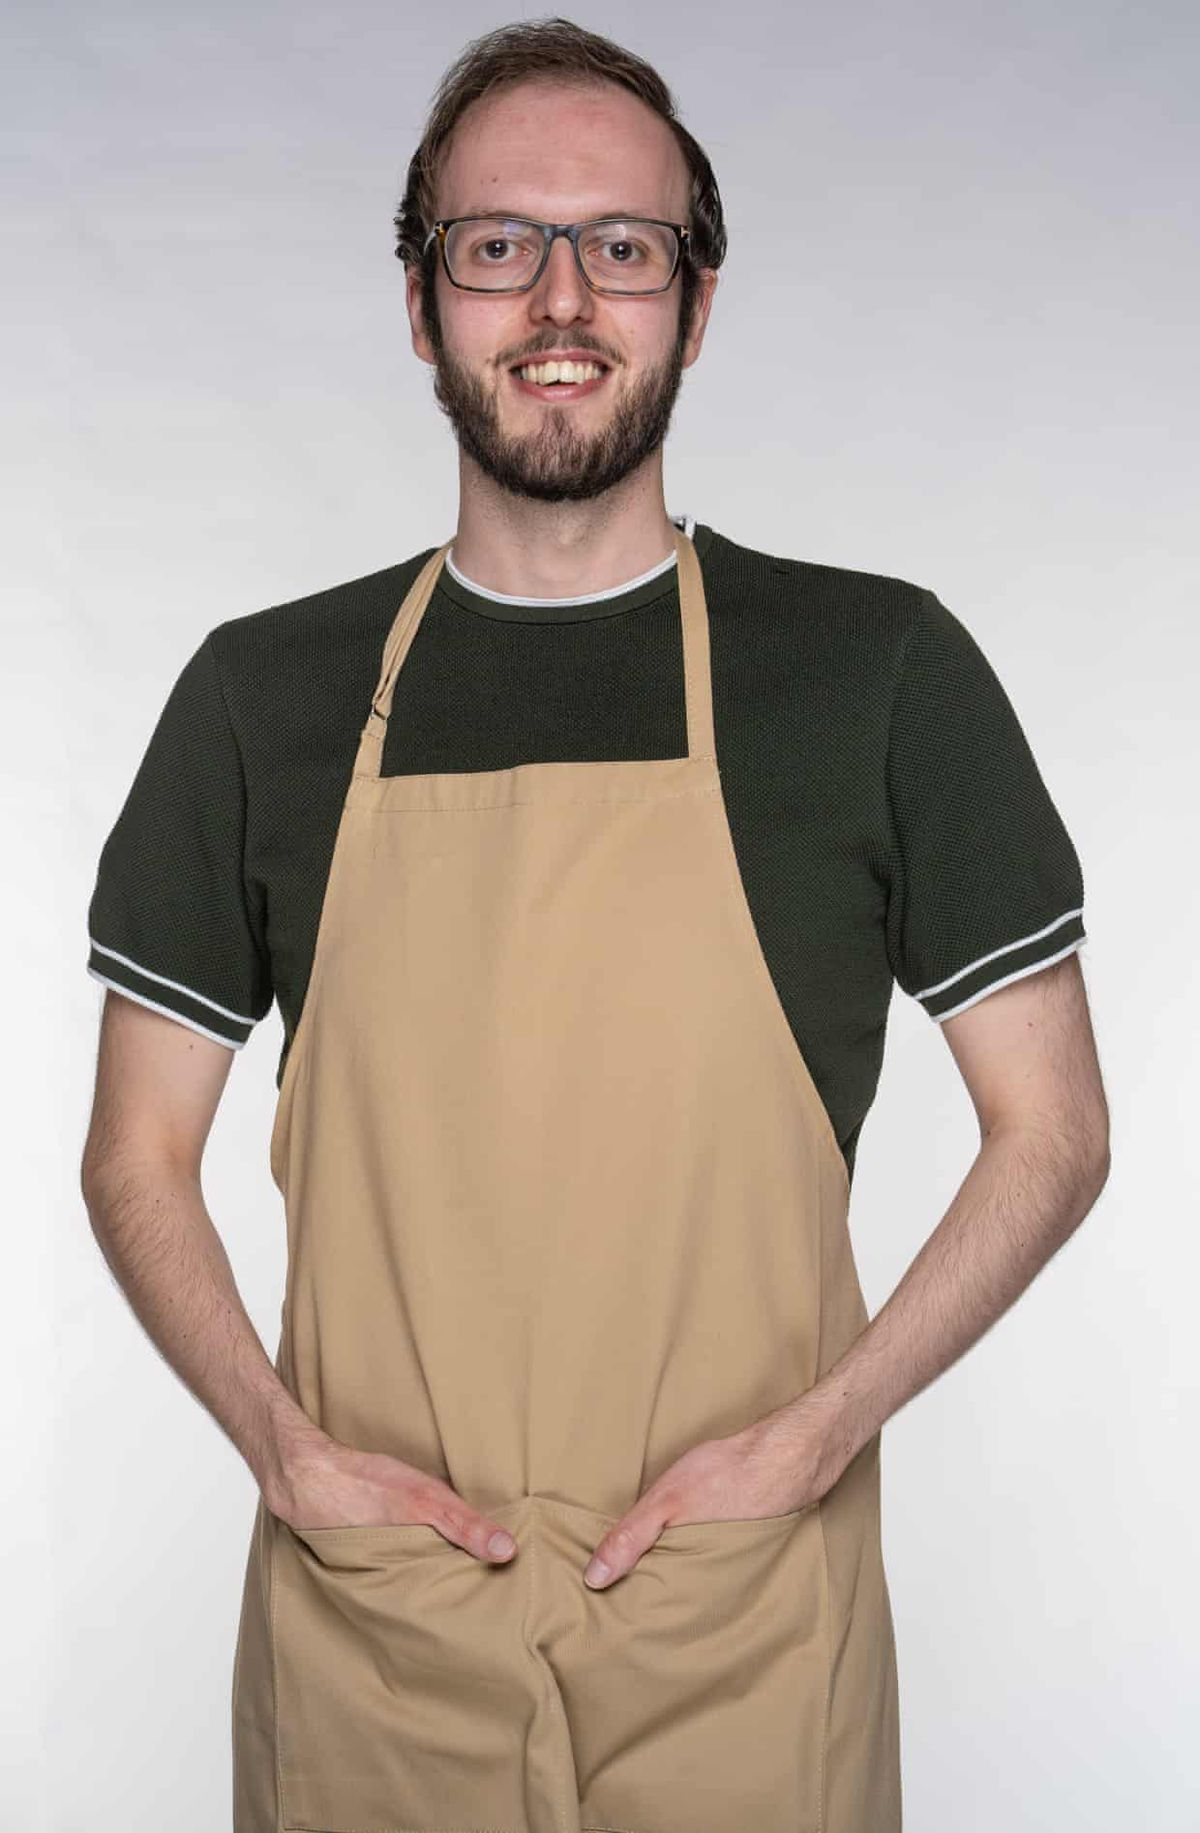 Great British Bake Off 2021 contestant Tom, who will compete on GBBO this year